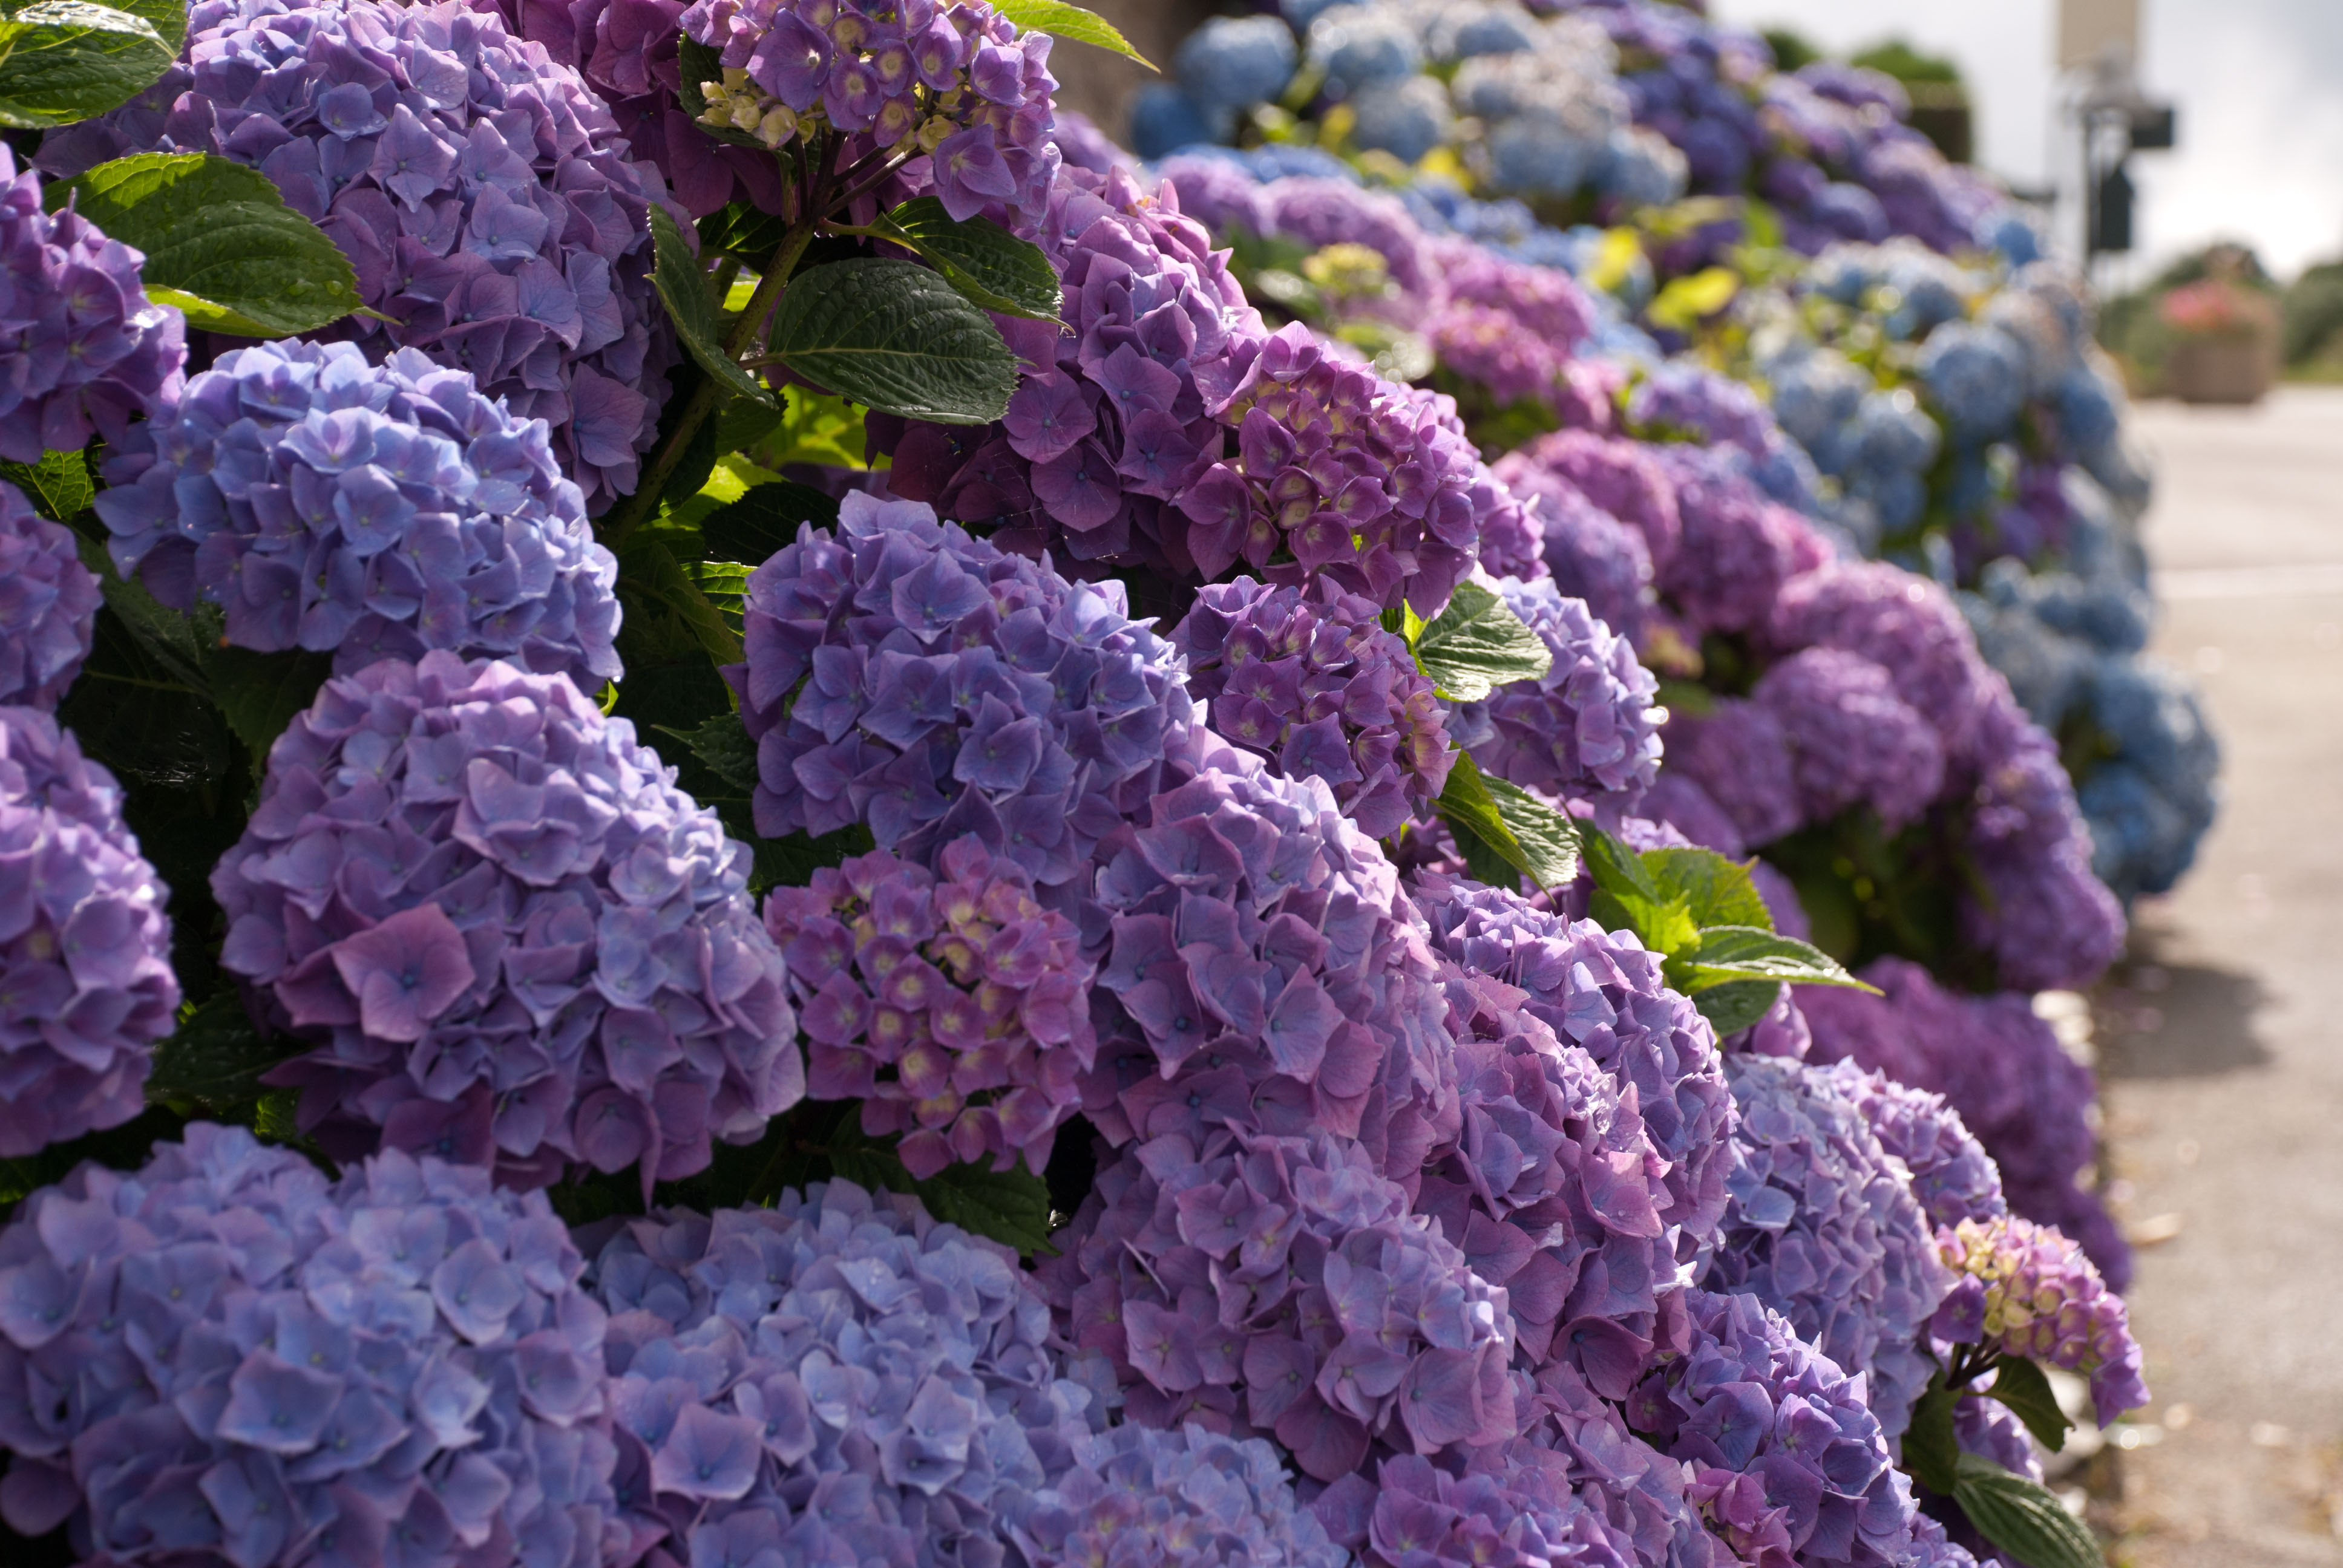 France In Bloom: Magnificent Blue Hydrangeas